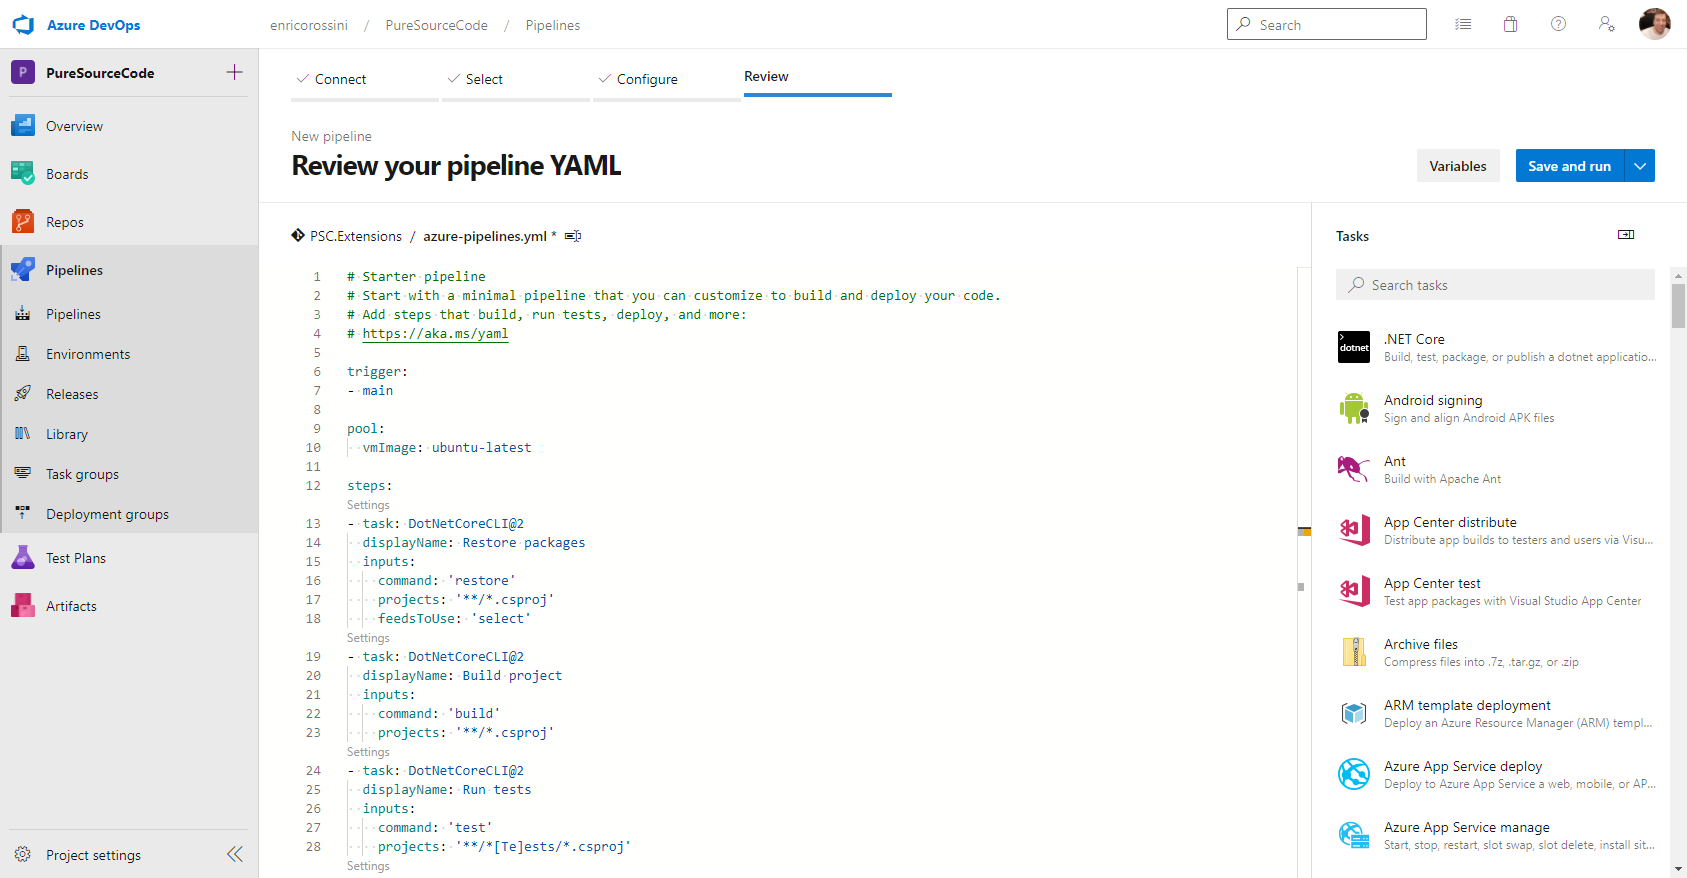 Review your pipeline YAML